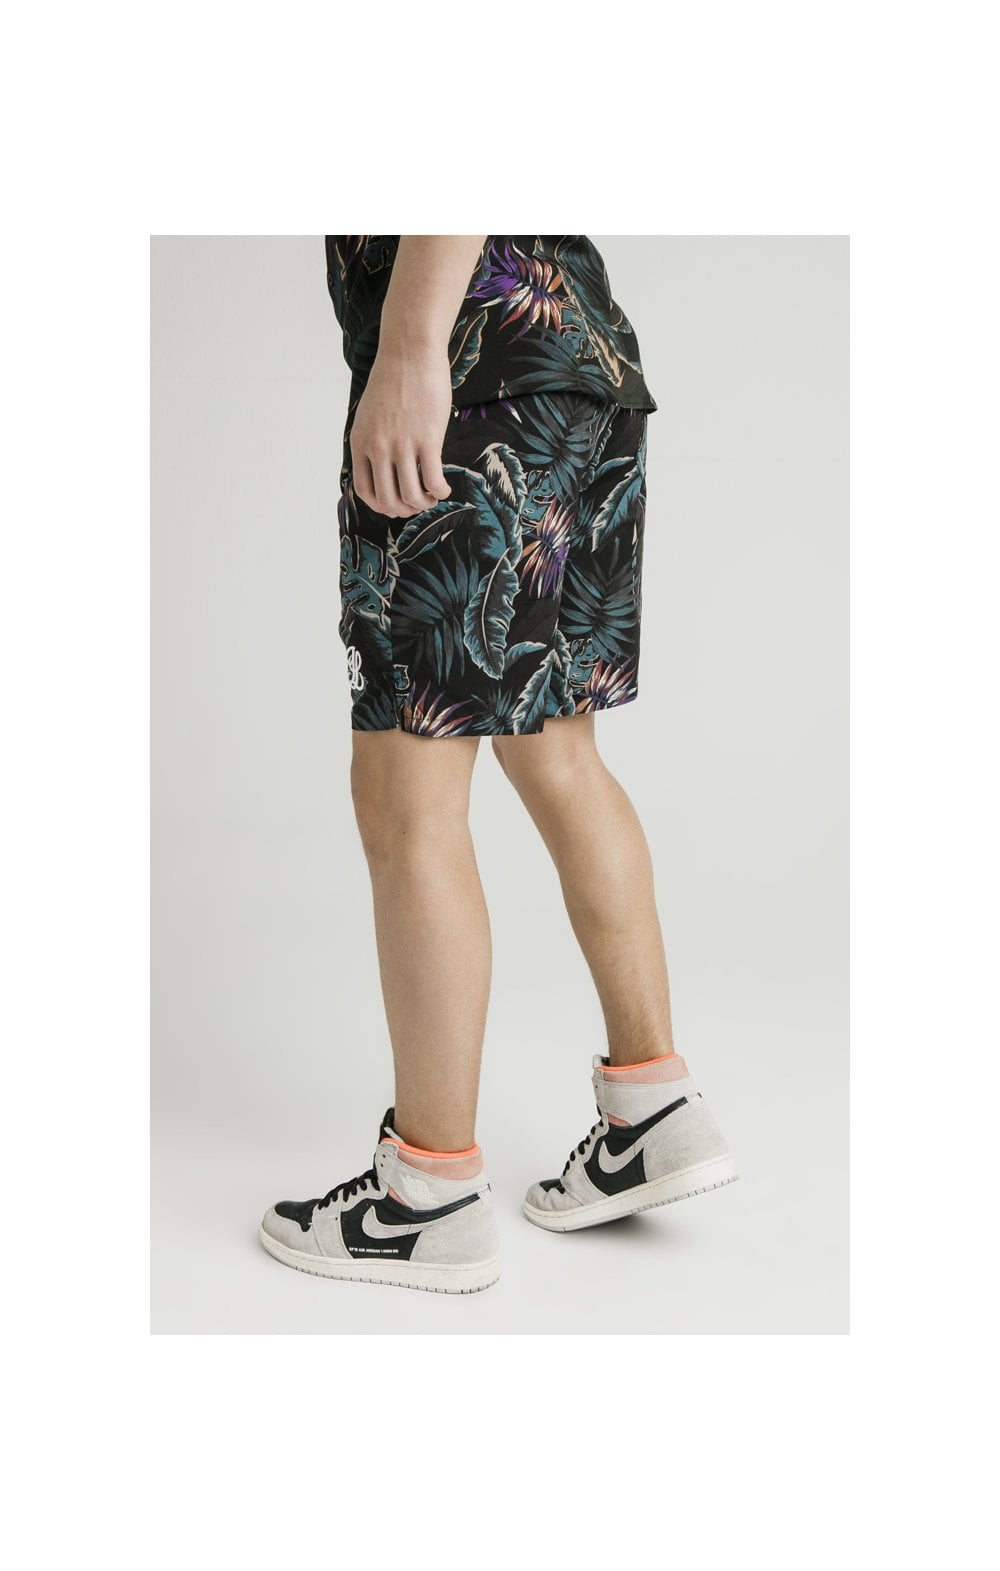 Illusive London Badeshorts - Palme (3)